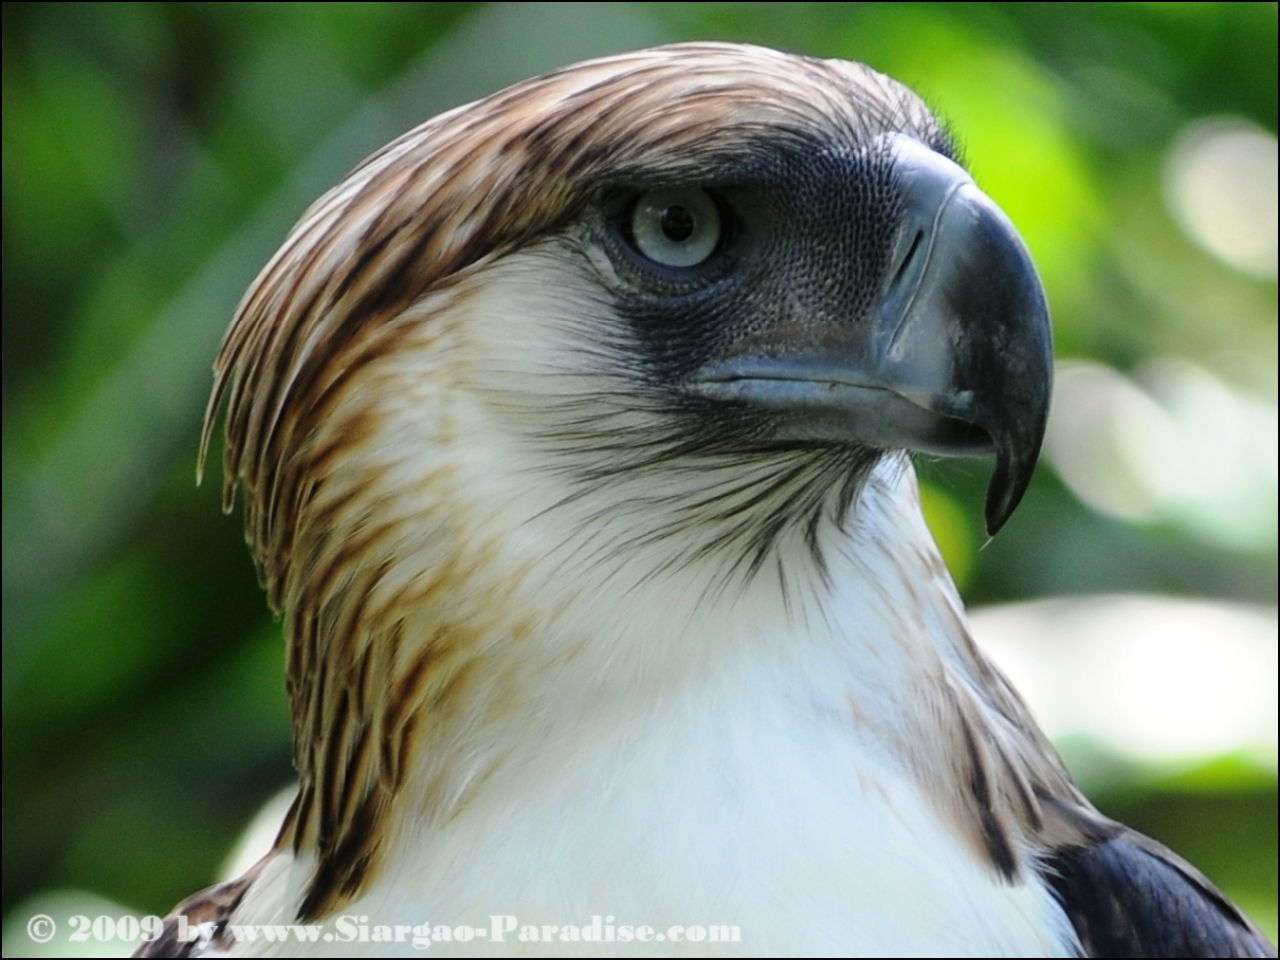 Philippine Eagle Backgrounds, Compatible - PC, Mobile, Gadgets| 1280x960 px